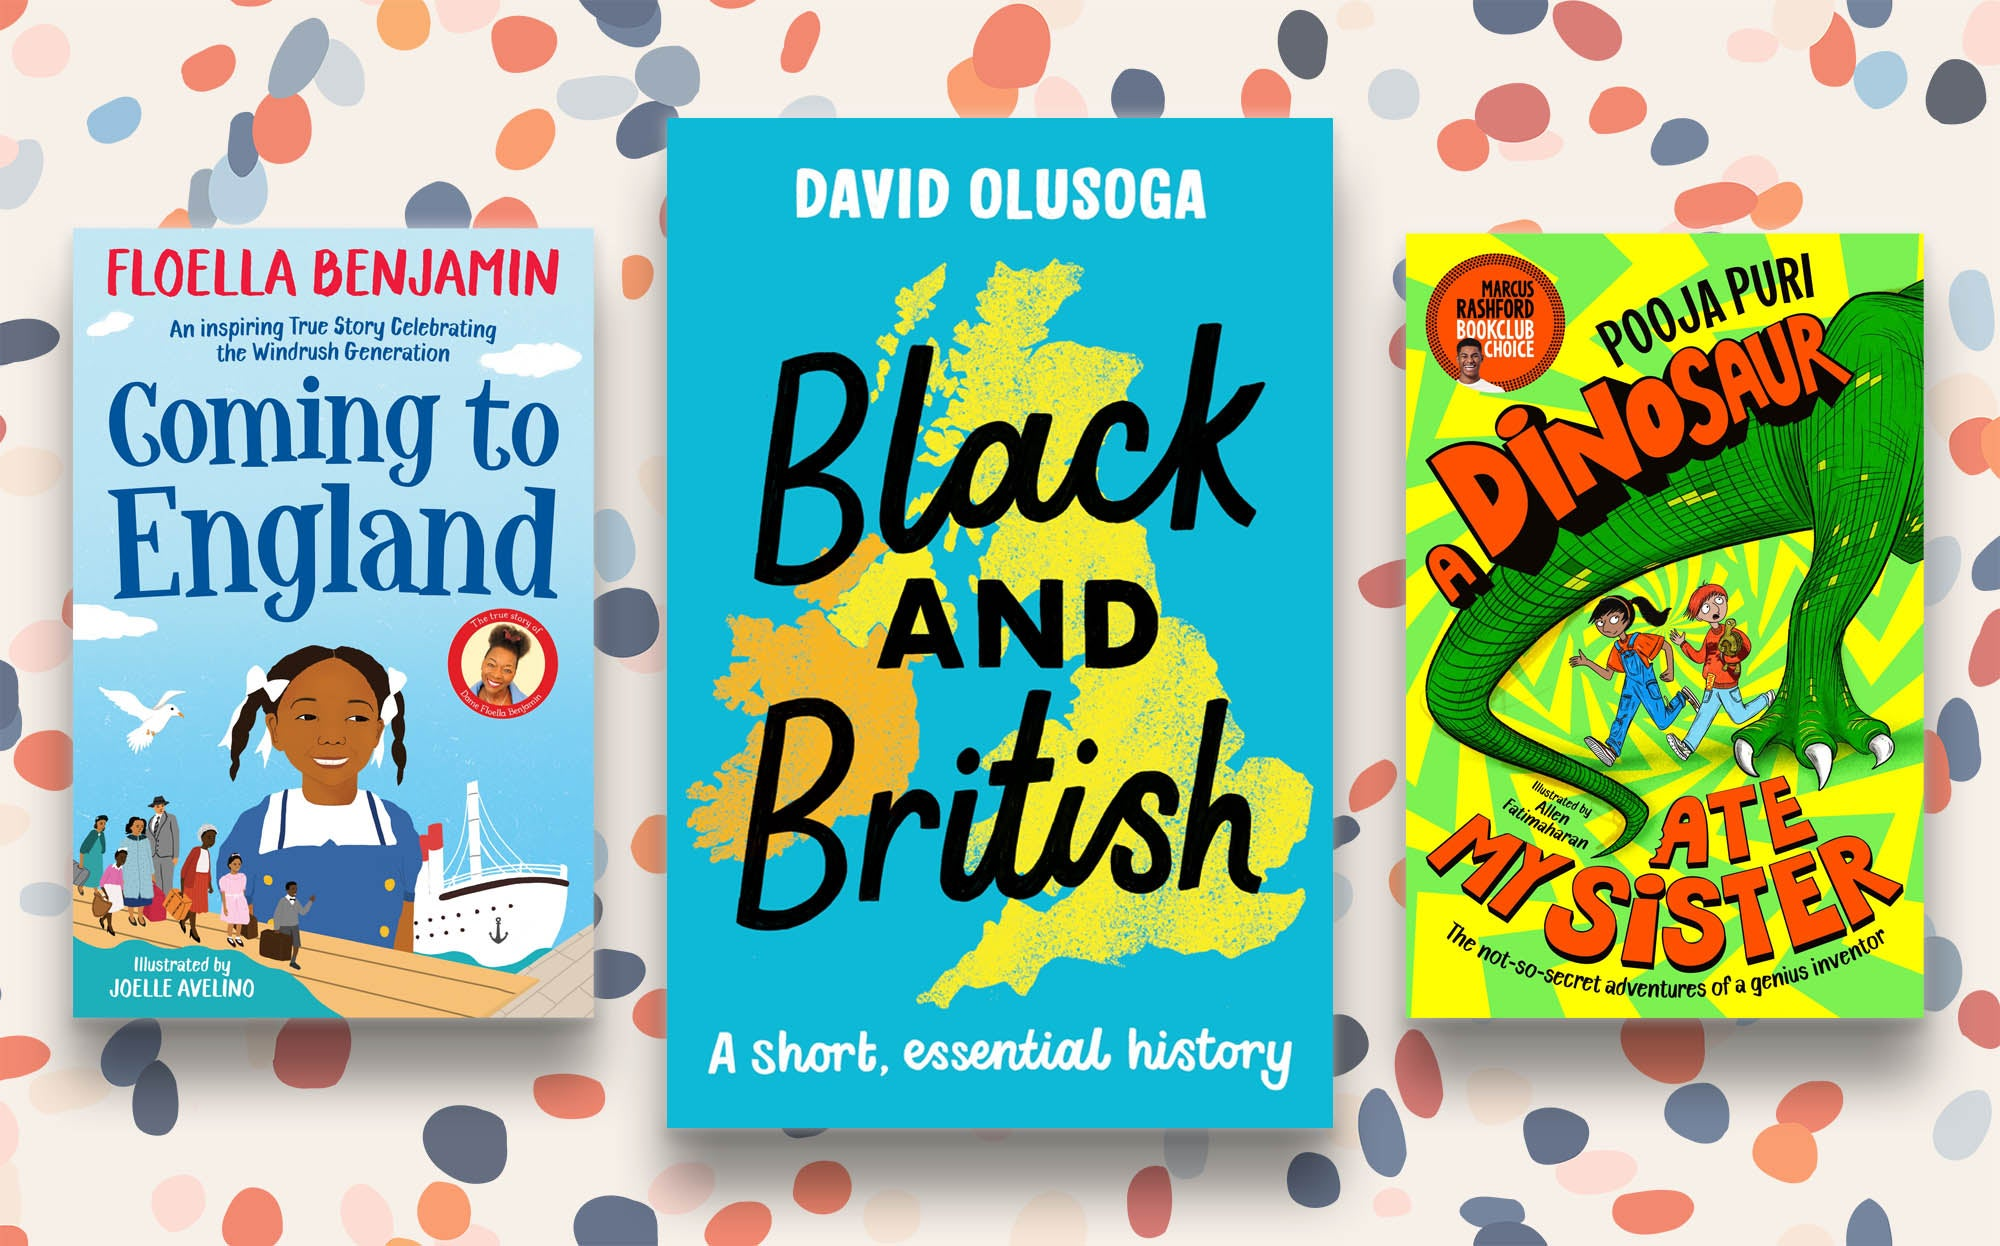 Three book covers on a dotted background: Coming to England by Floella Benjamin, Black and British by David Olusoga, and A Dinosaur Ate My Sister by Pooja Puri